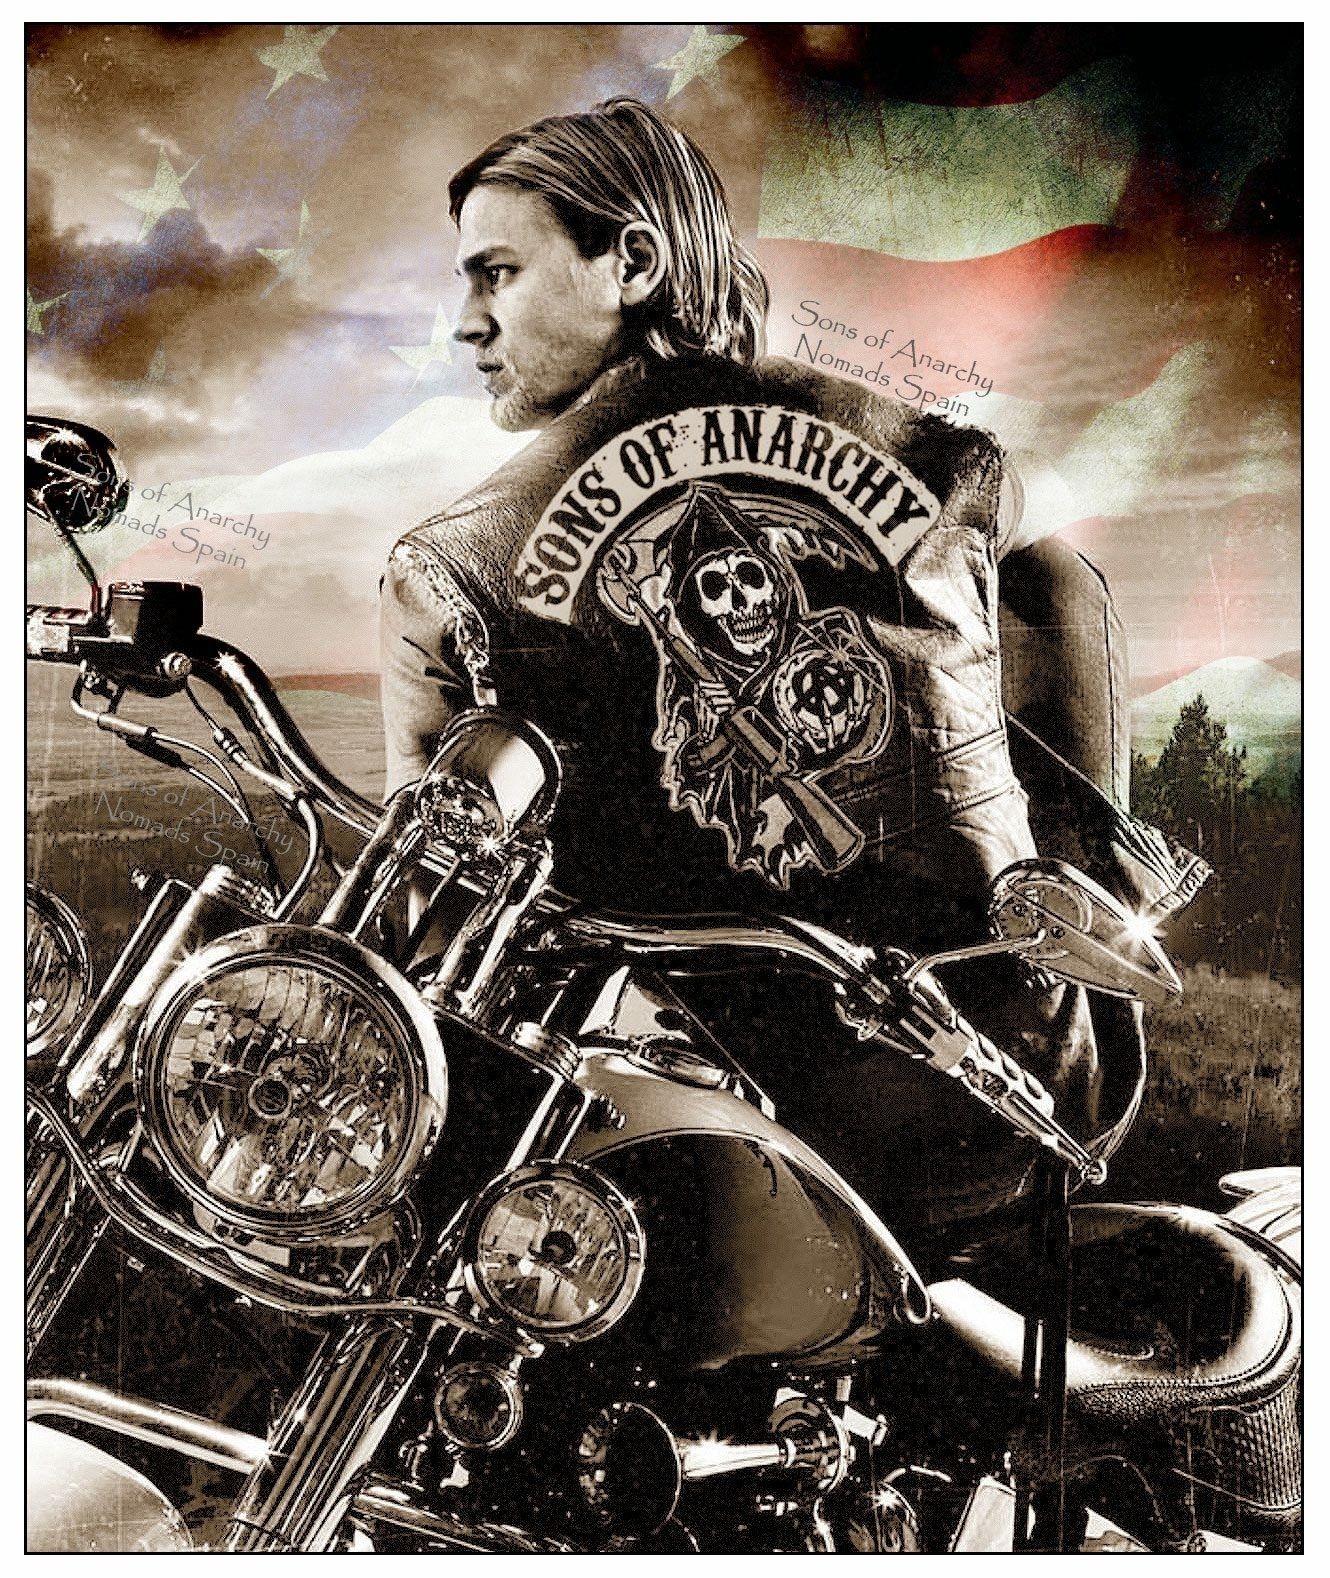 Pin by Jackie Trujillo on Sons Of Anarchy | Sons of ...